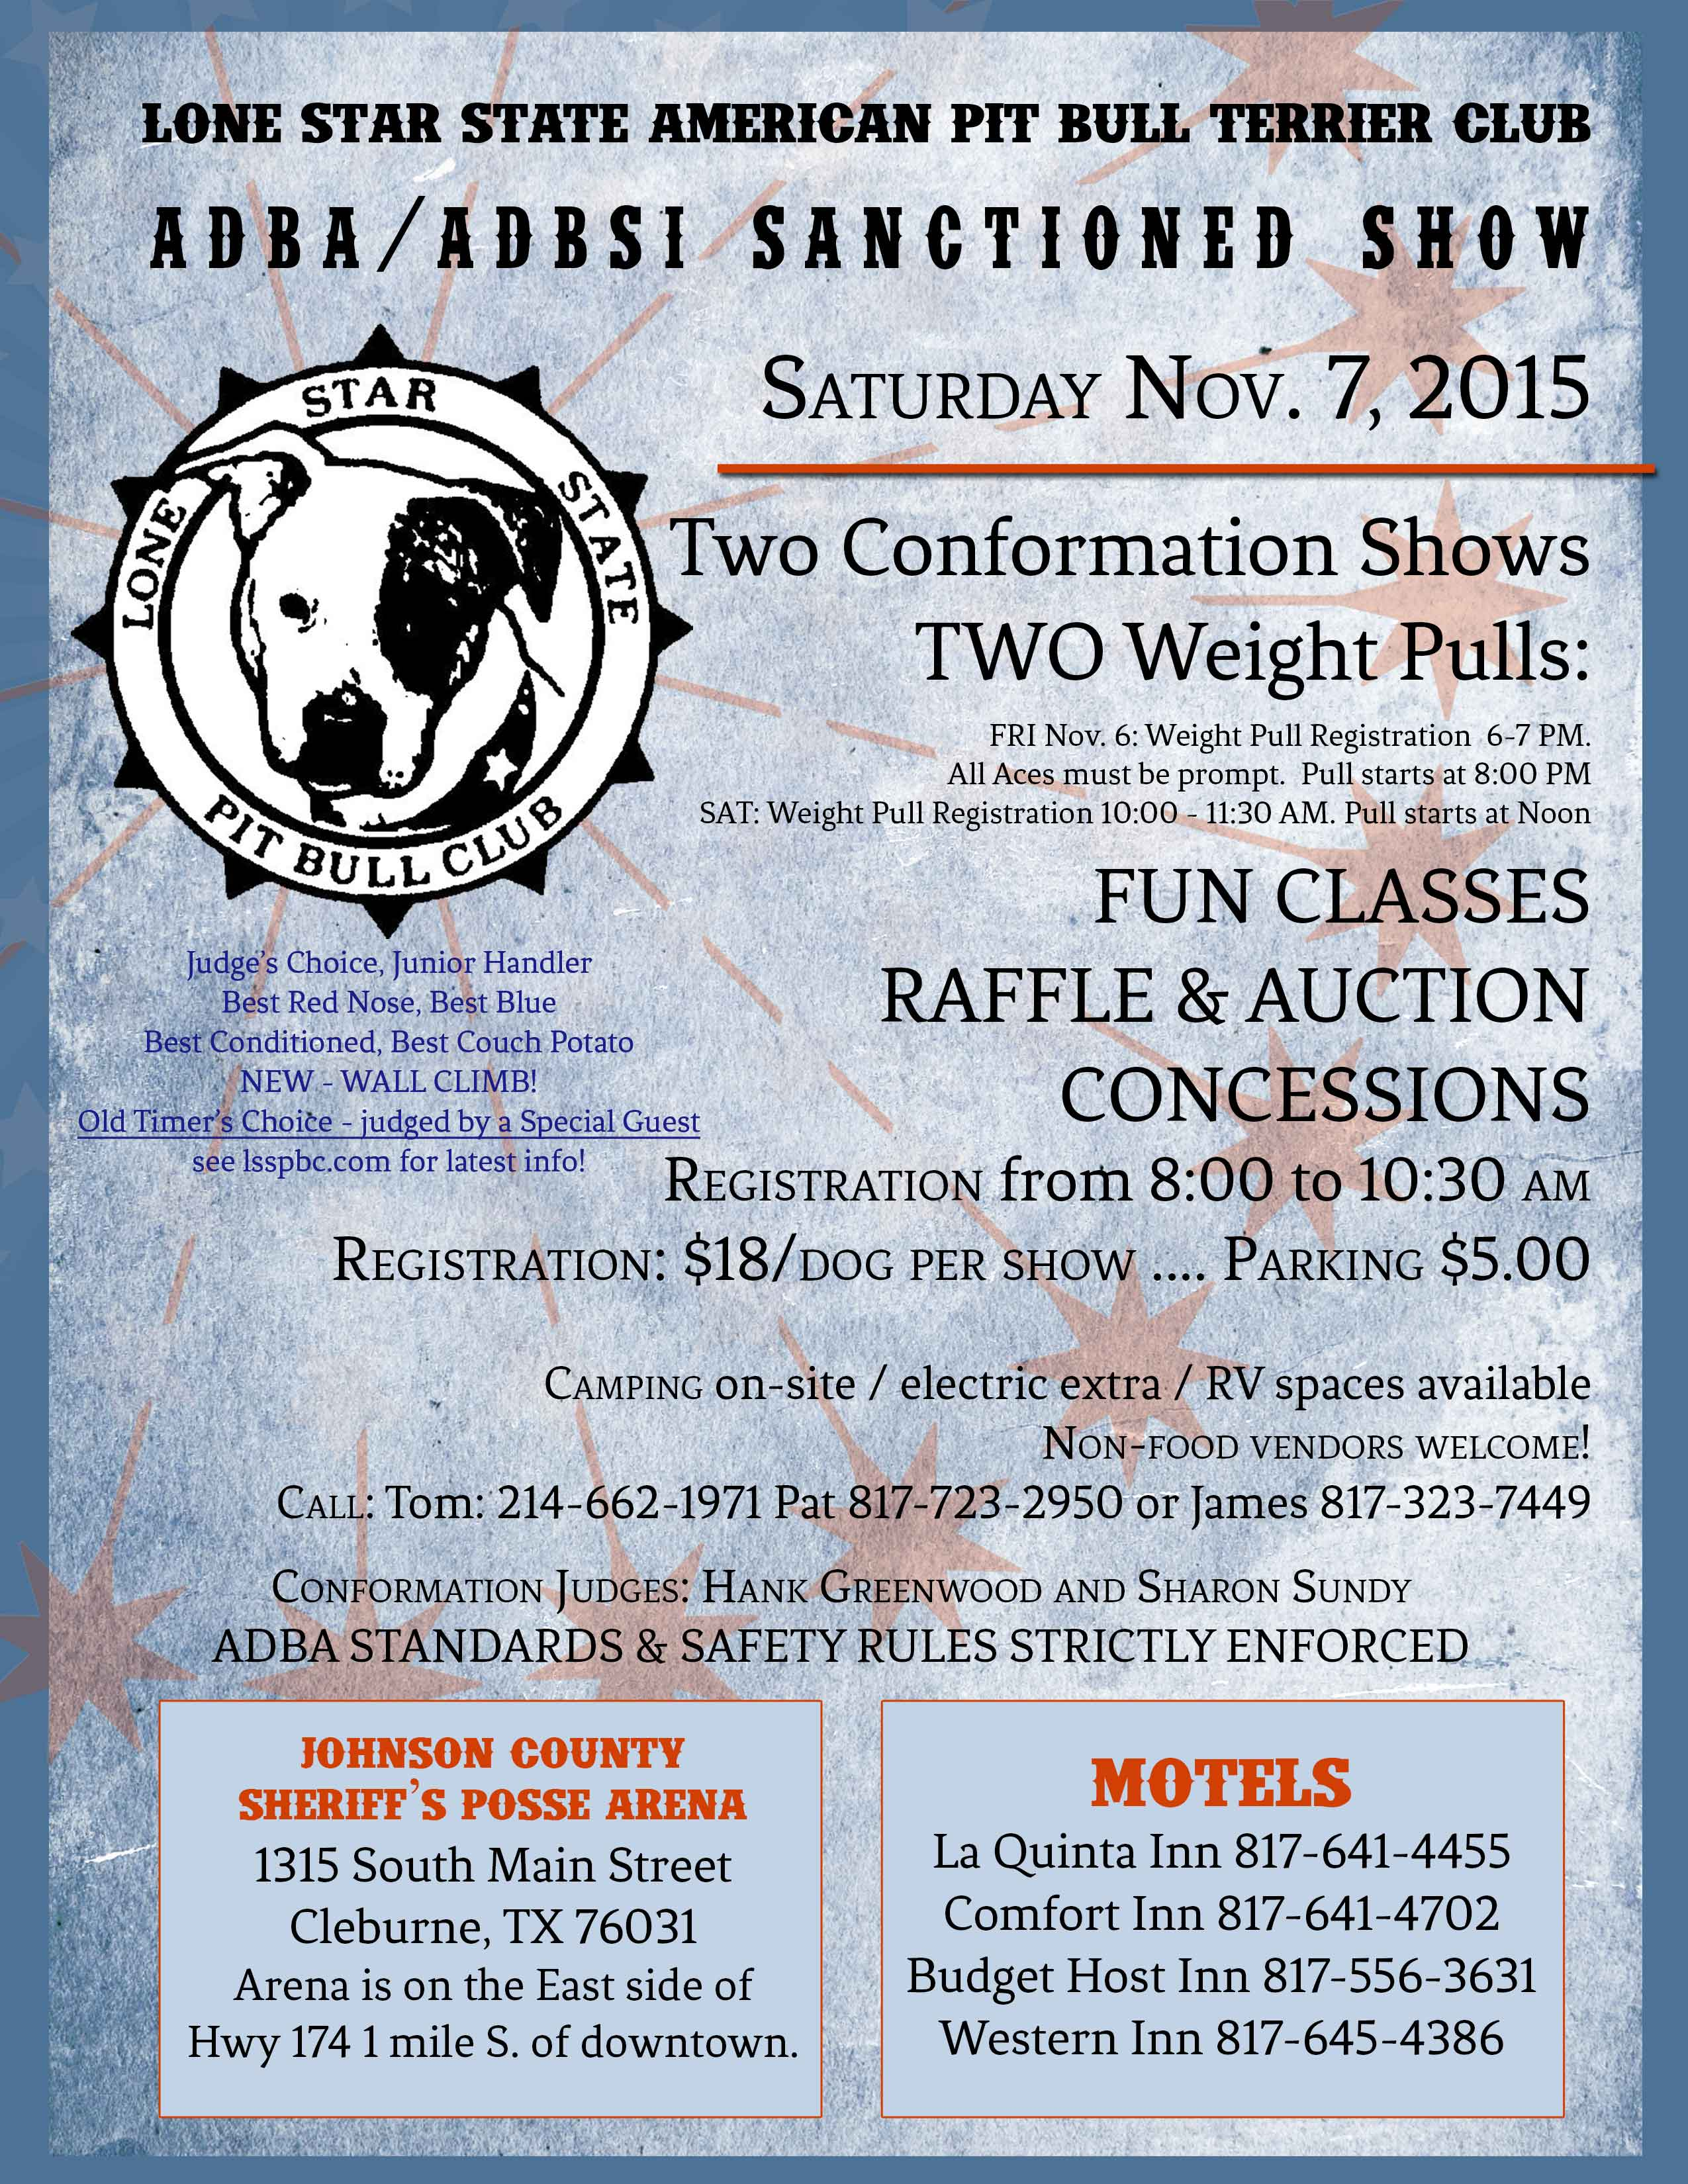 SanctionedShowFlyerNov2015